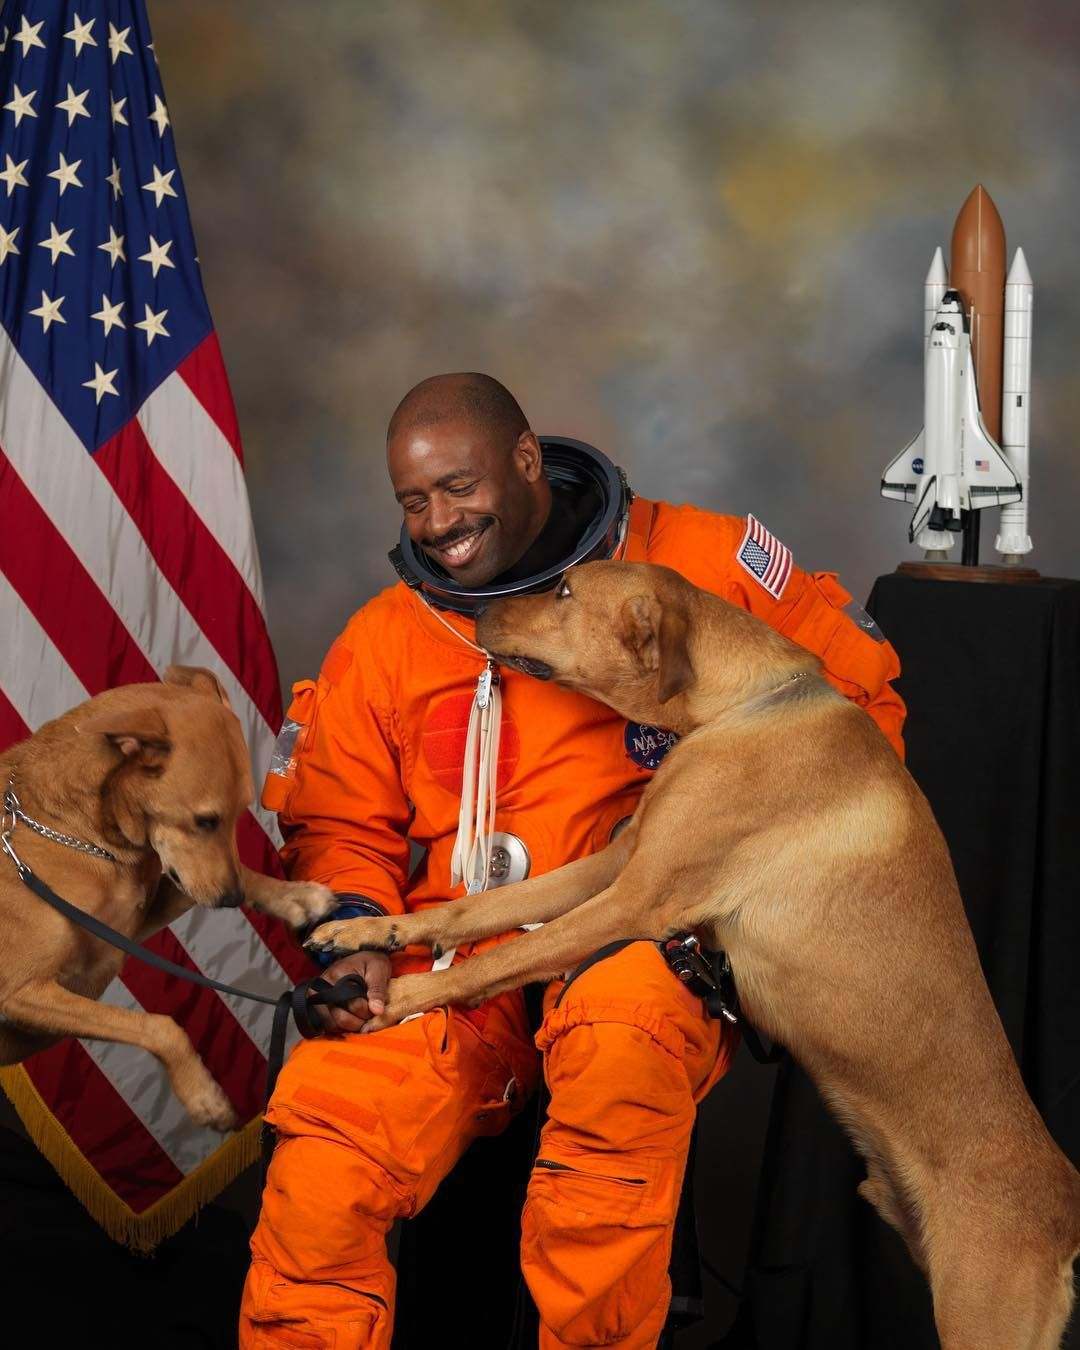 Leland Melvin On Instagram The Other Nasa Jakeandscout Pics B